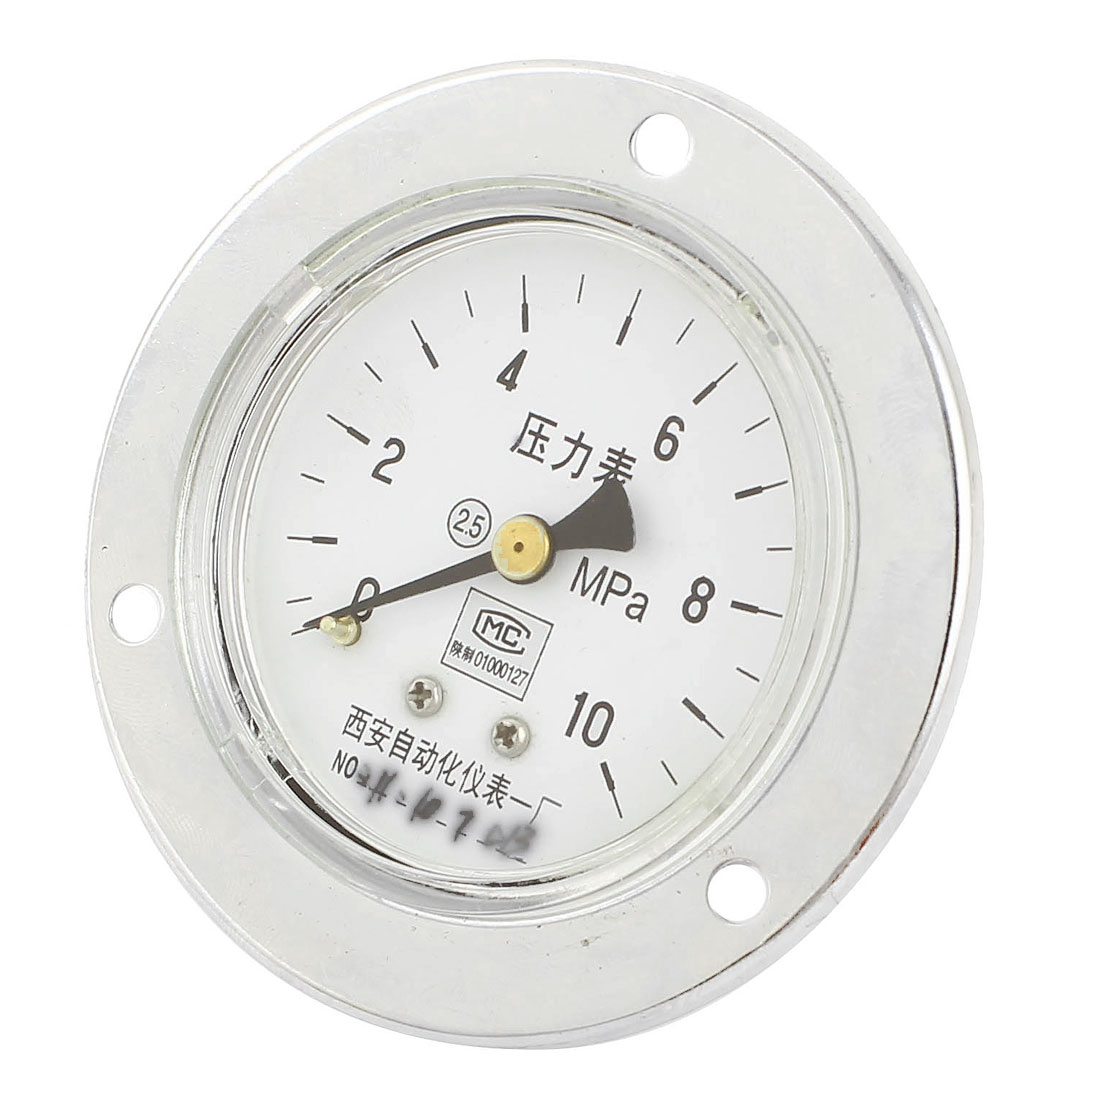 13mm Male Thread Vertical Water Air Vacuum Pressure Meter Gauge 0-10MPa 60mm